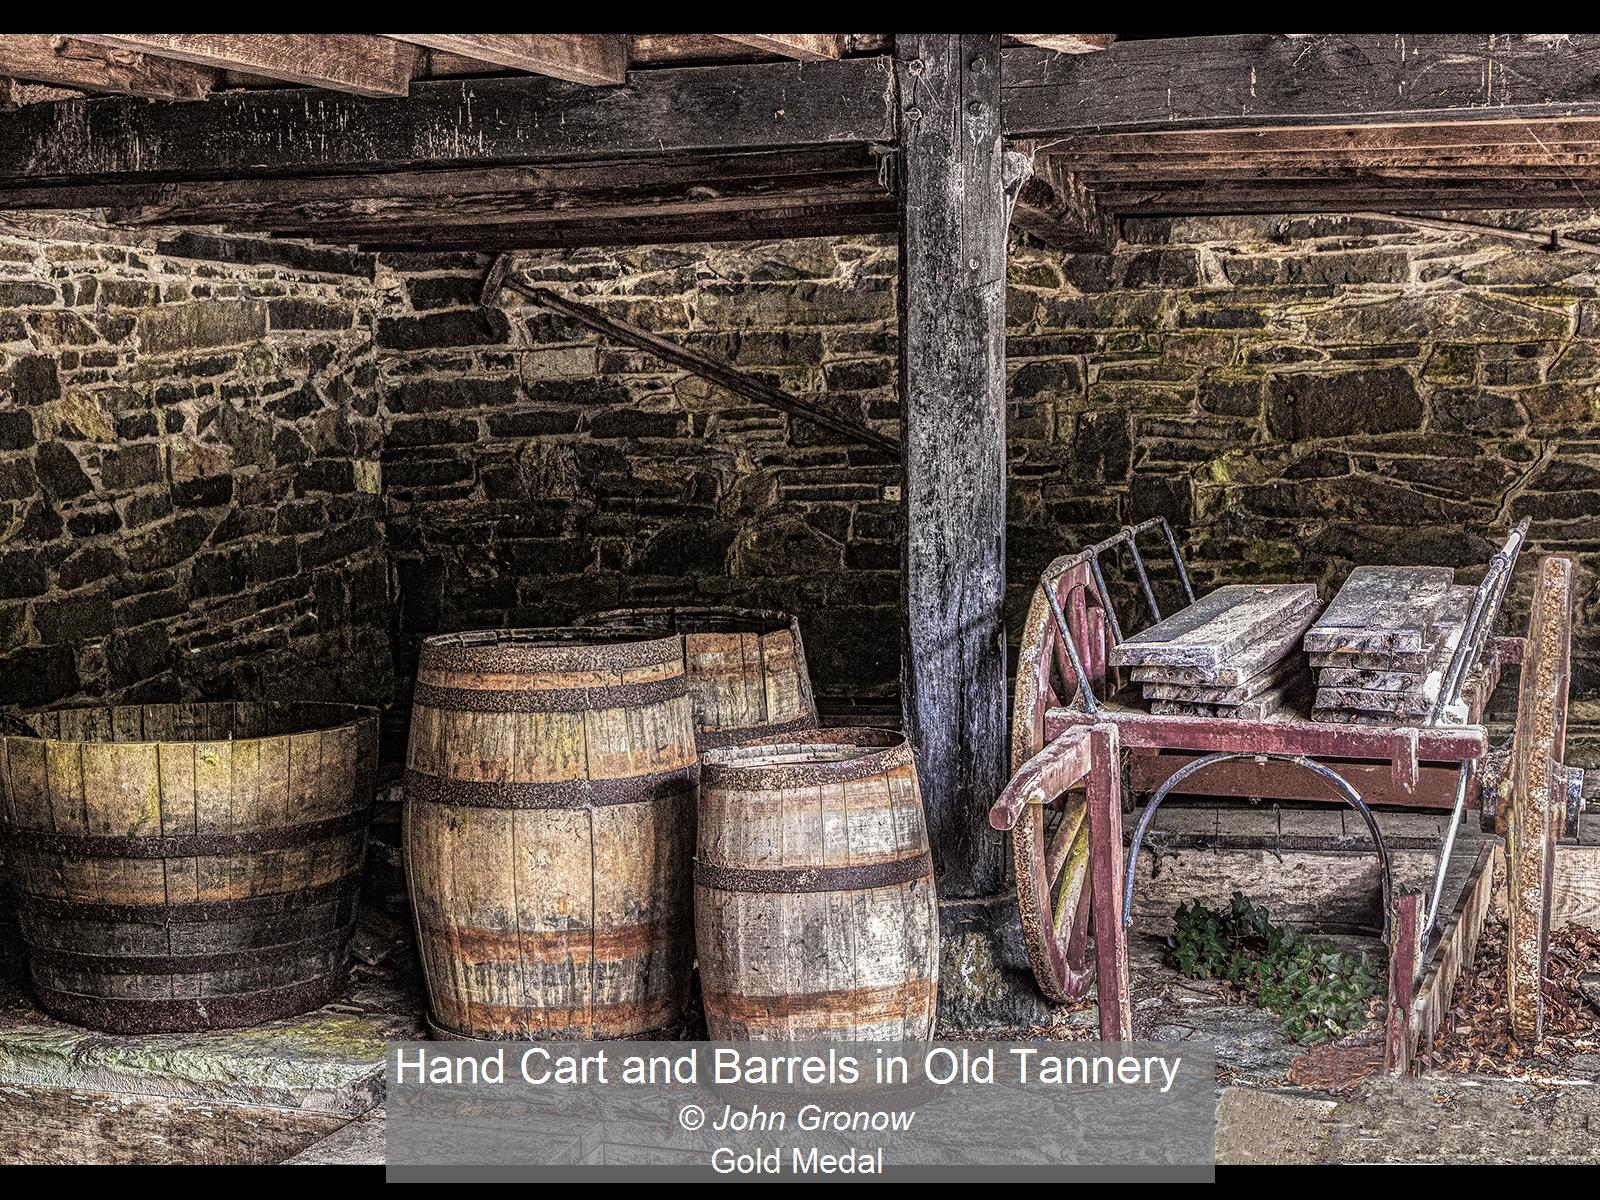 Hand Cart and Barrels in Old Tannery_Joh